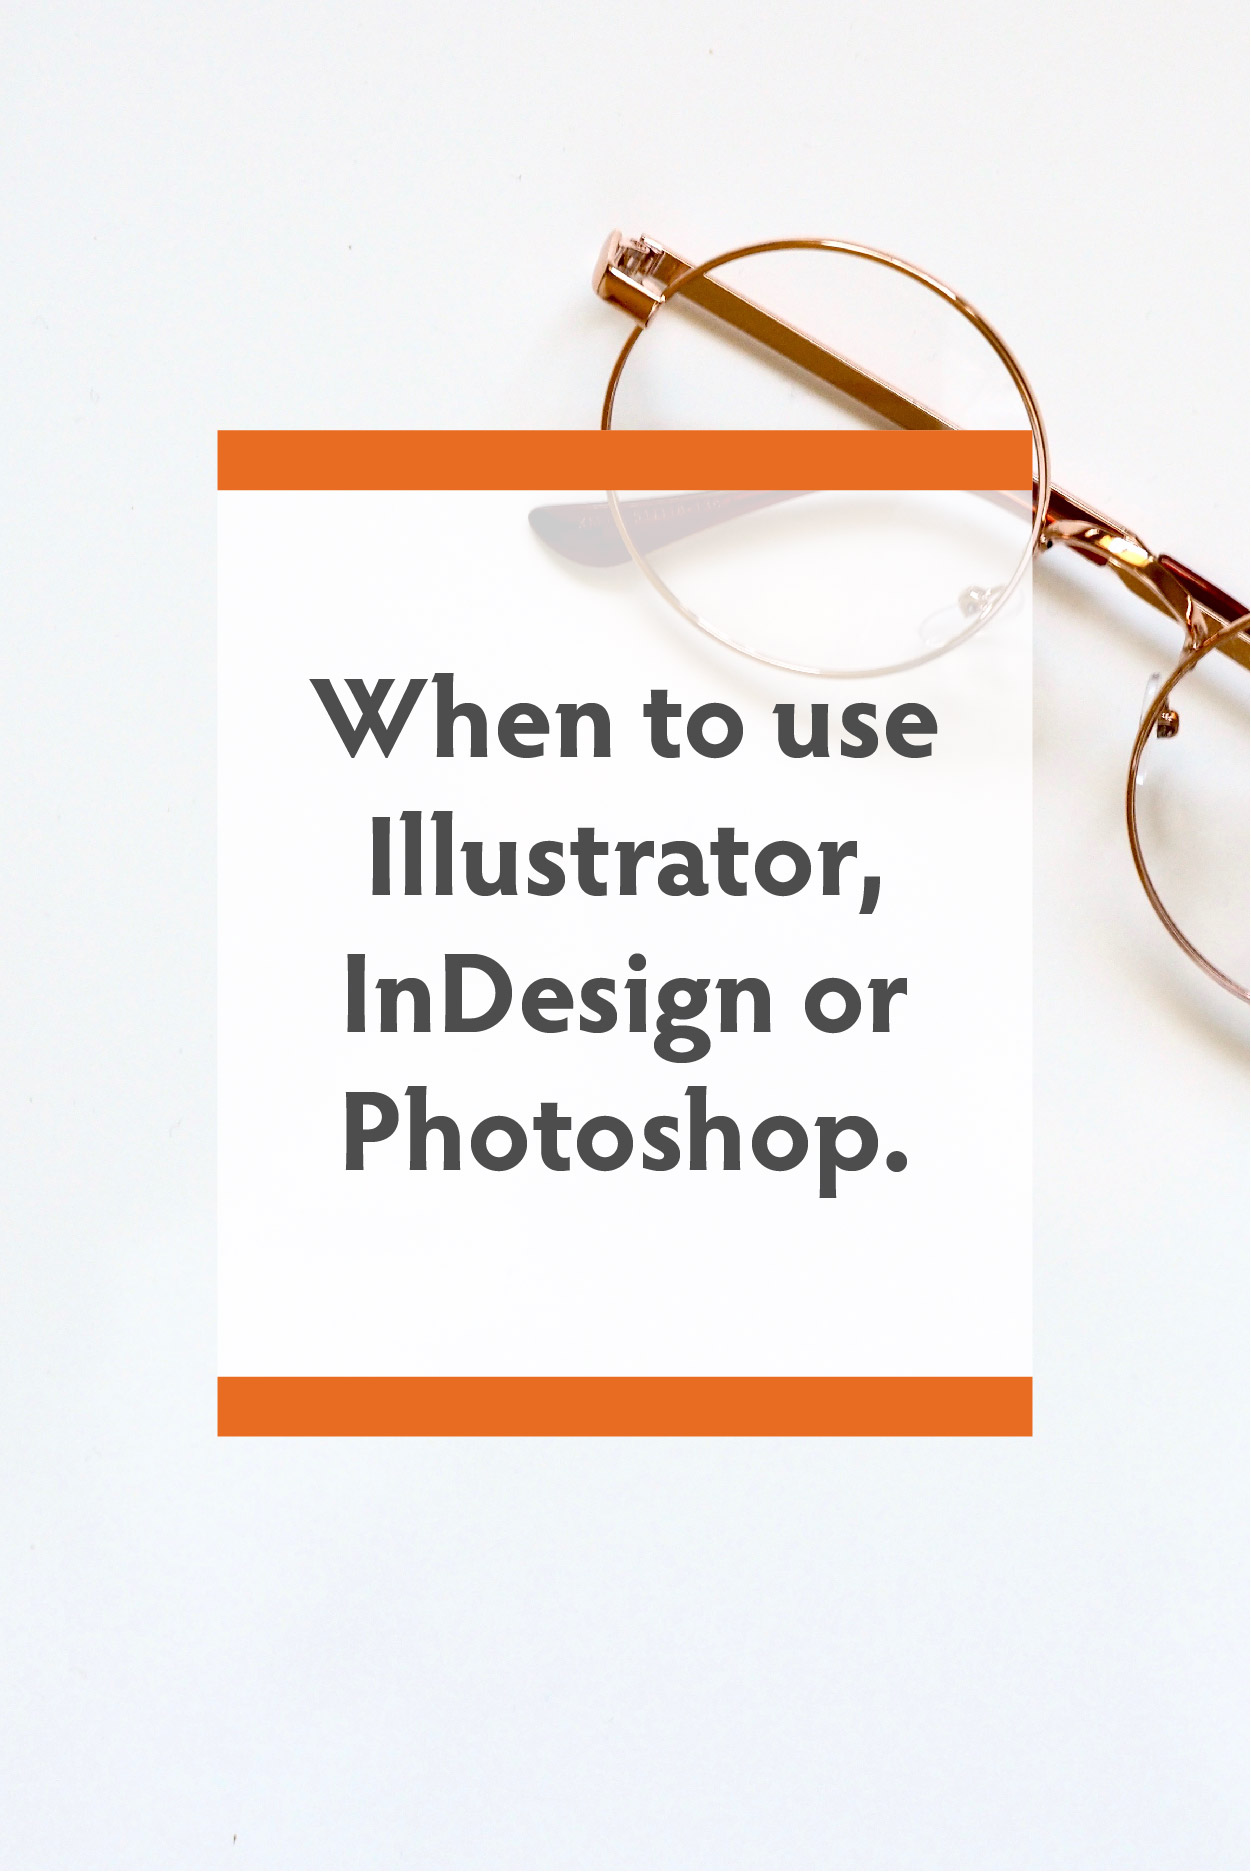 When to use Illustrator Indesign or Photoshop.jpg